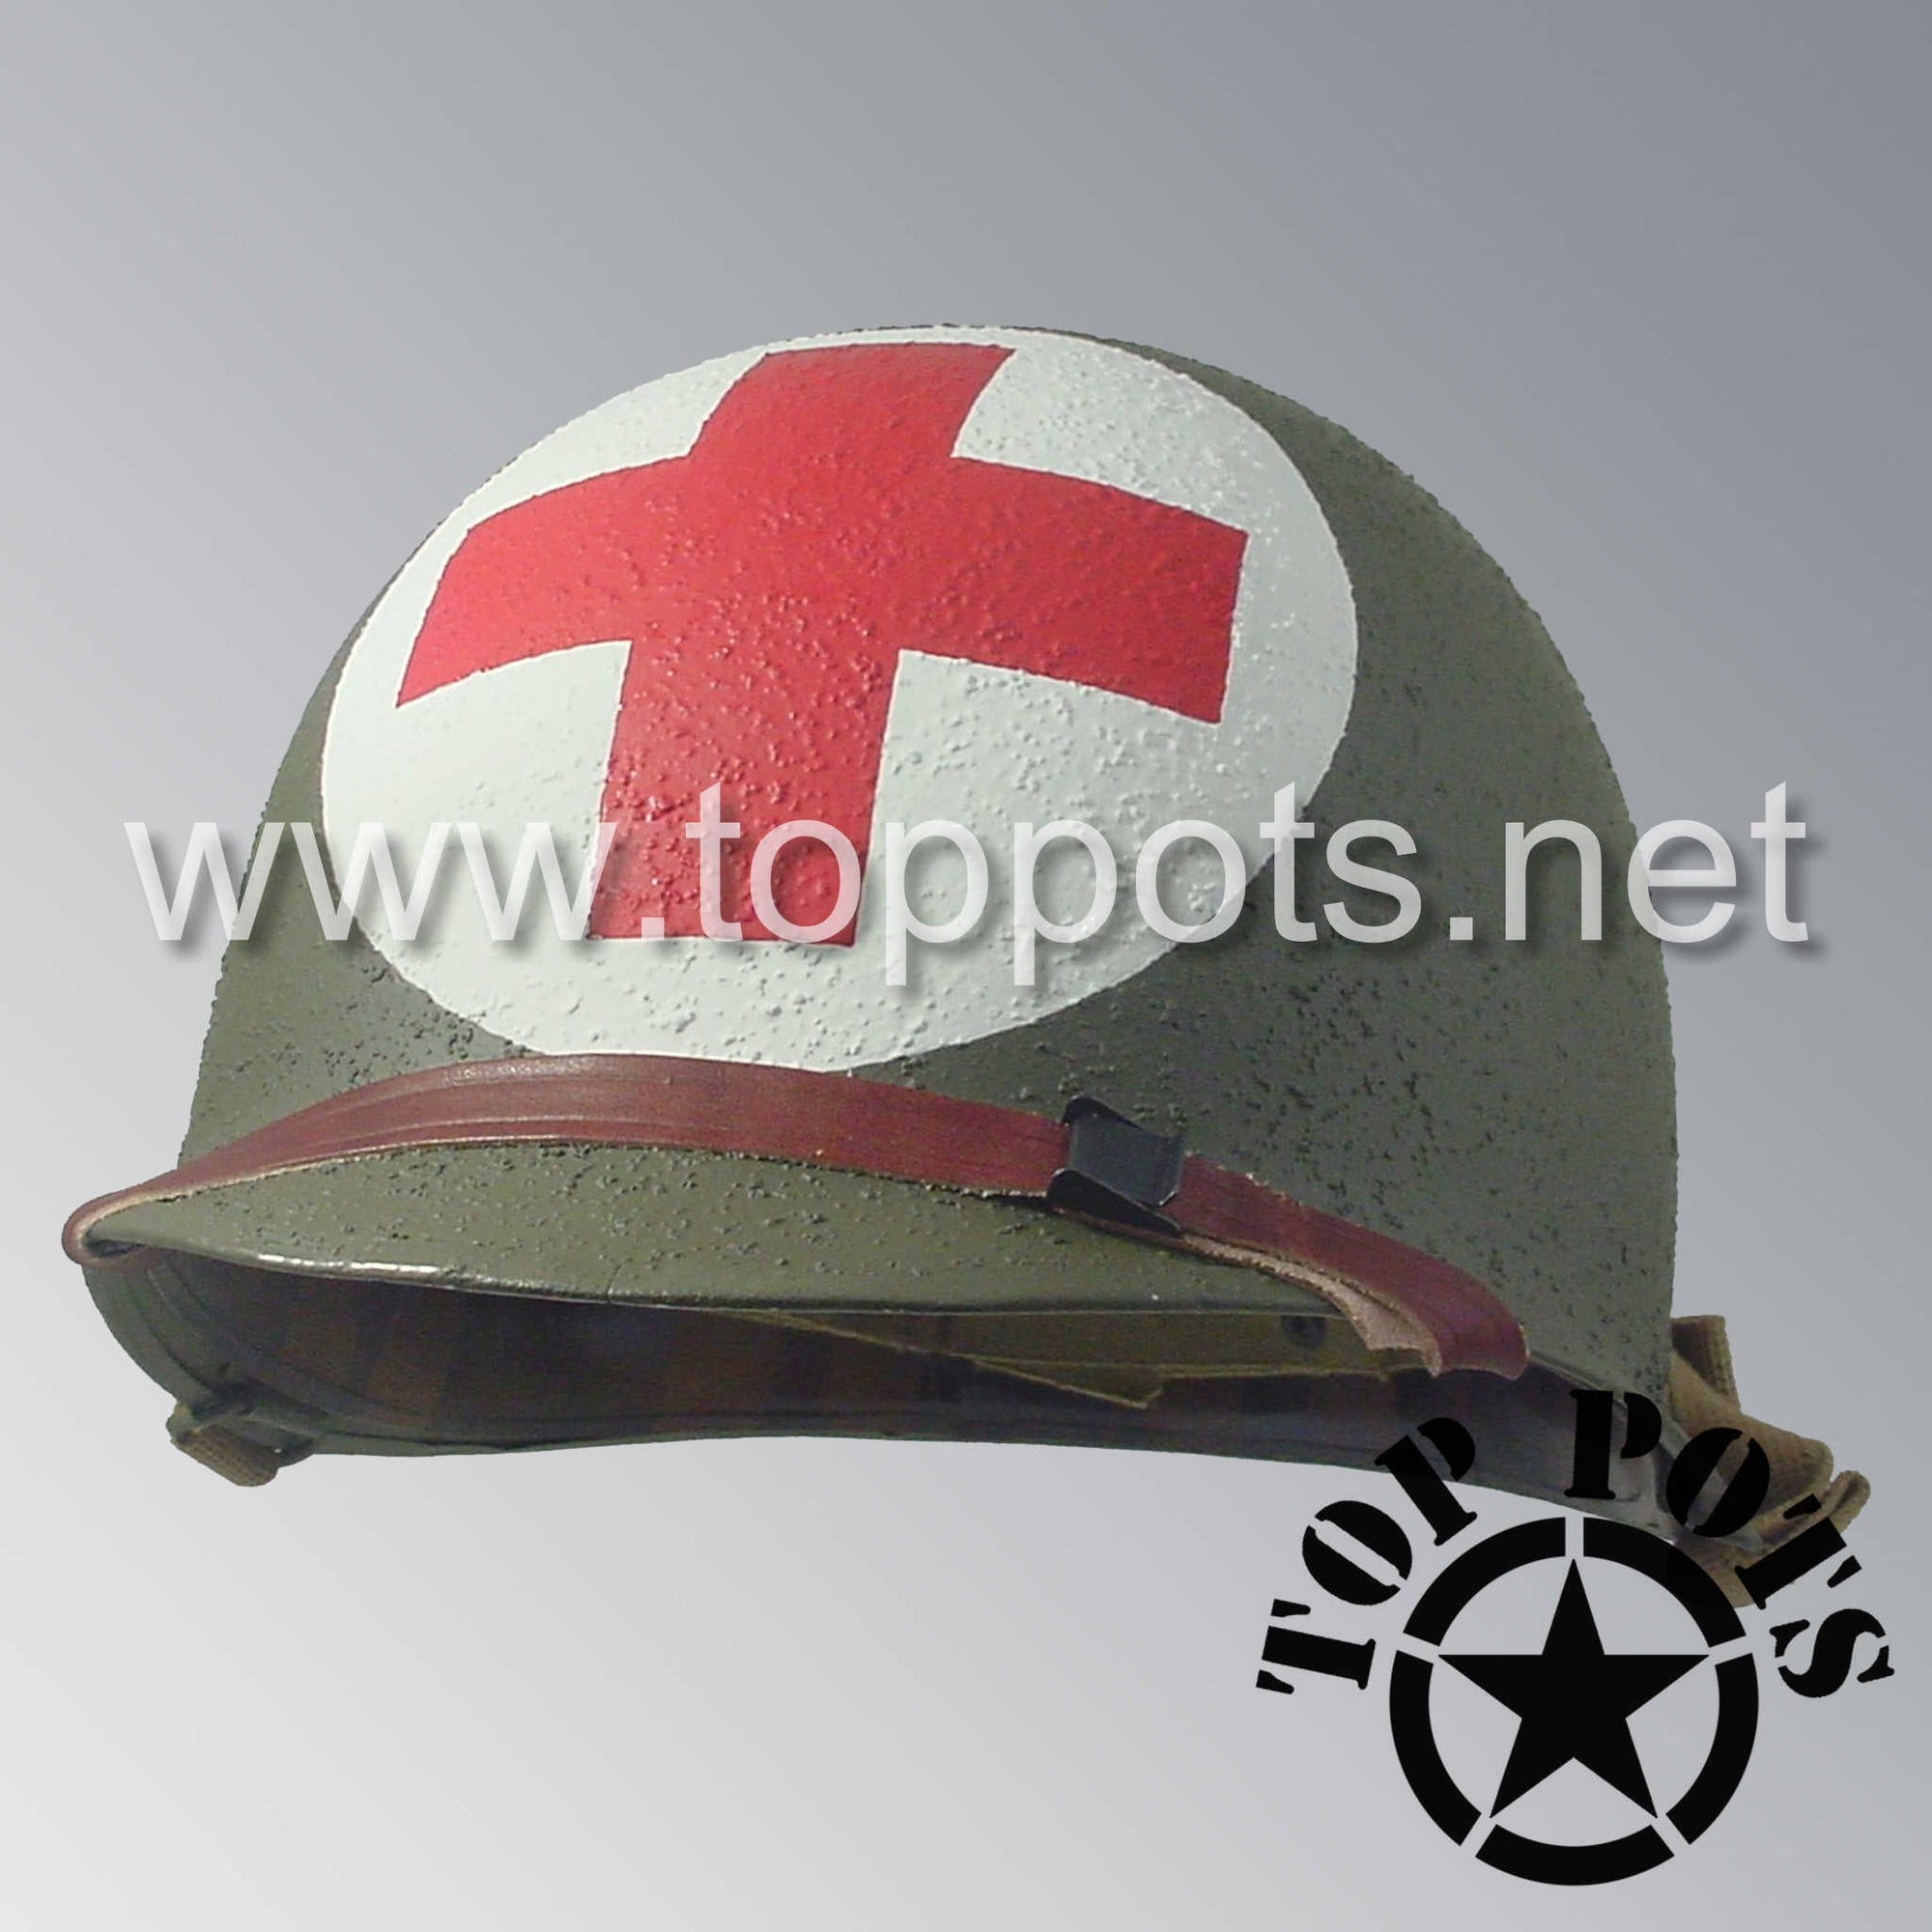 Image 1 of WWII US Army Restored Original M1 Infantry Helmet Swivel Bale Shell and Liner with 2nd Ranger Medic Wade Emblem